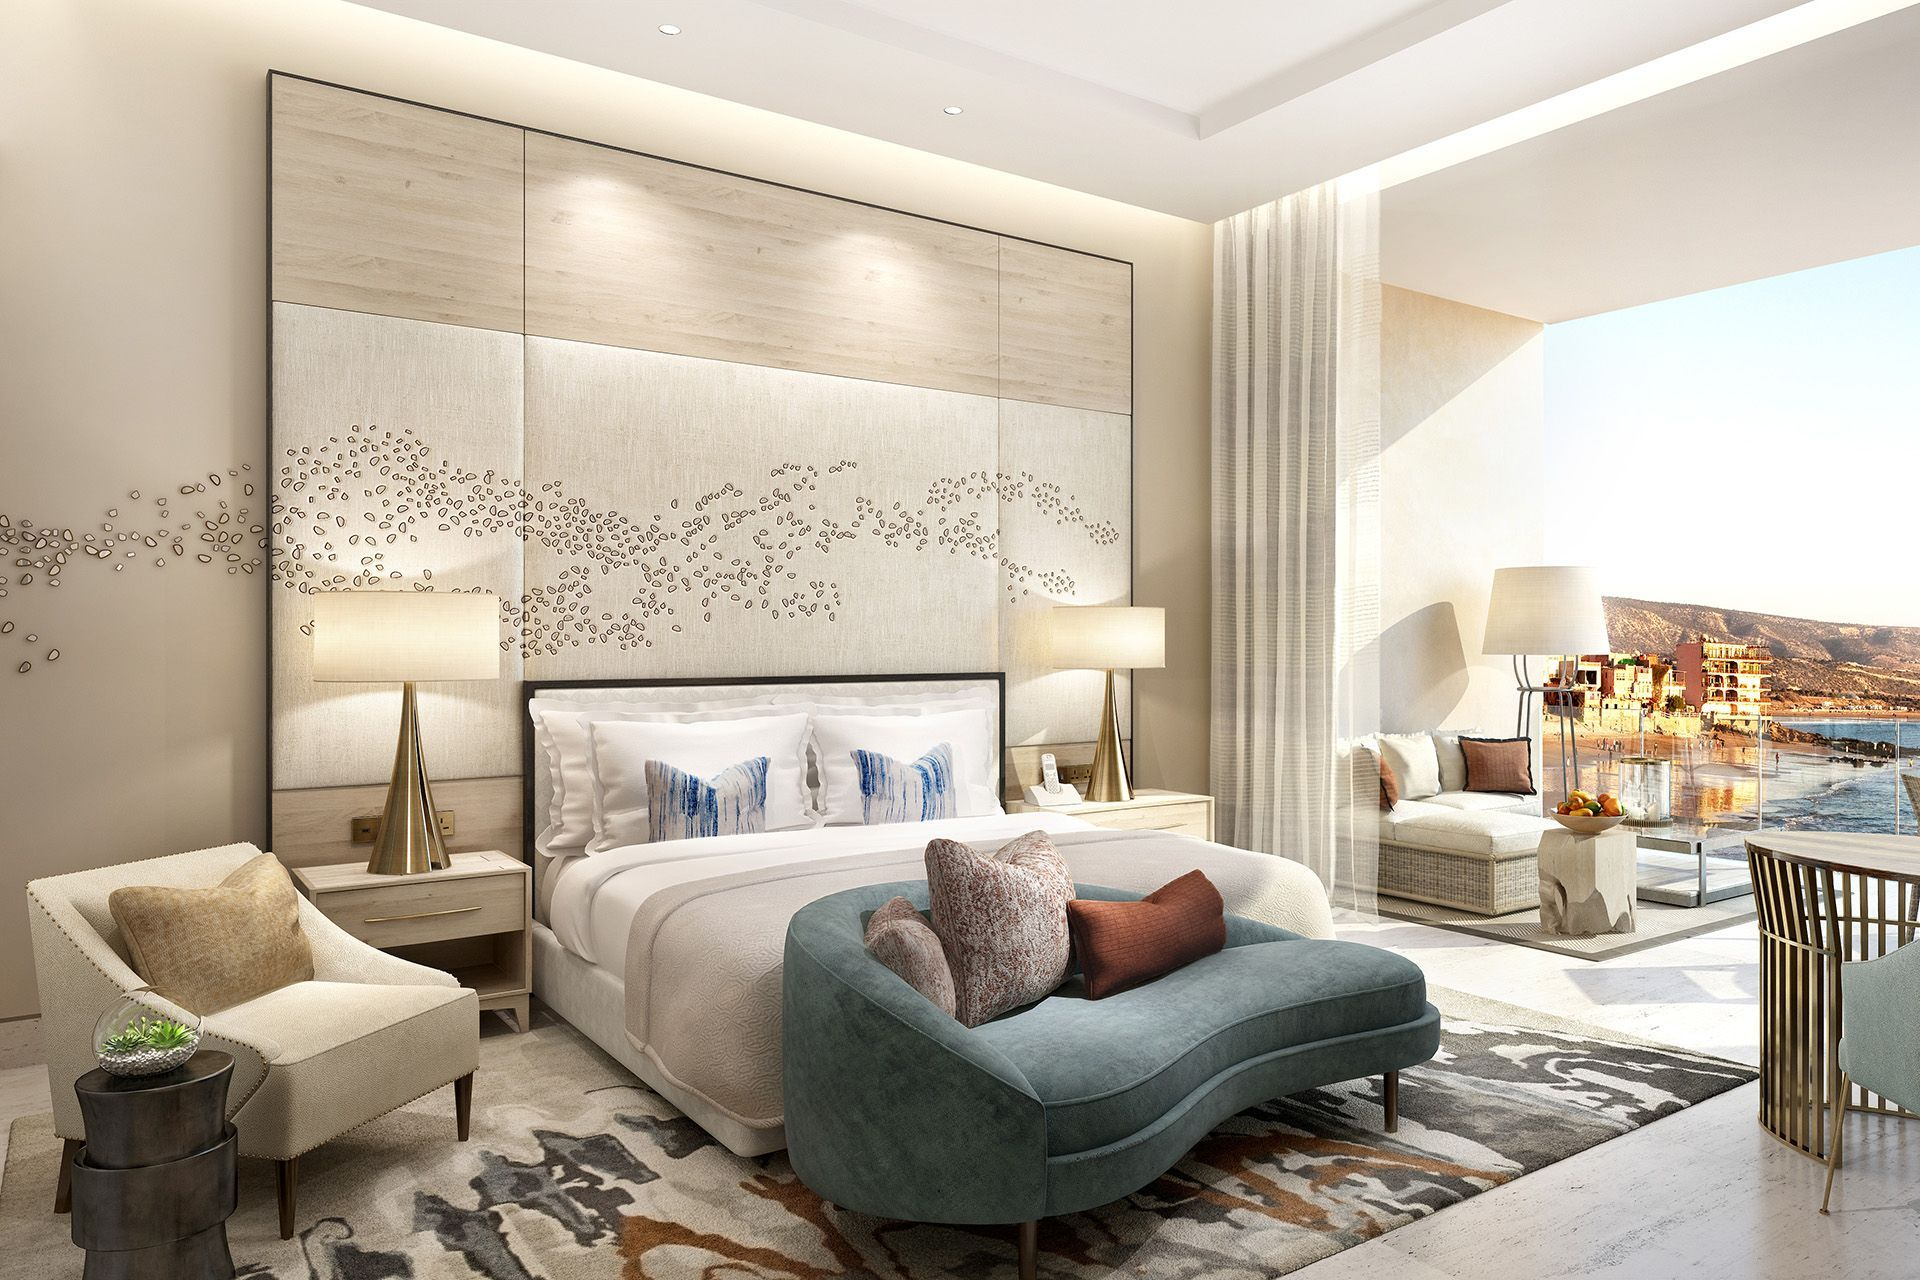 Four seasons taghazout interior designers wimberly for Hotel bedroom design